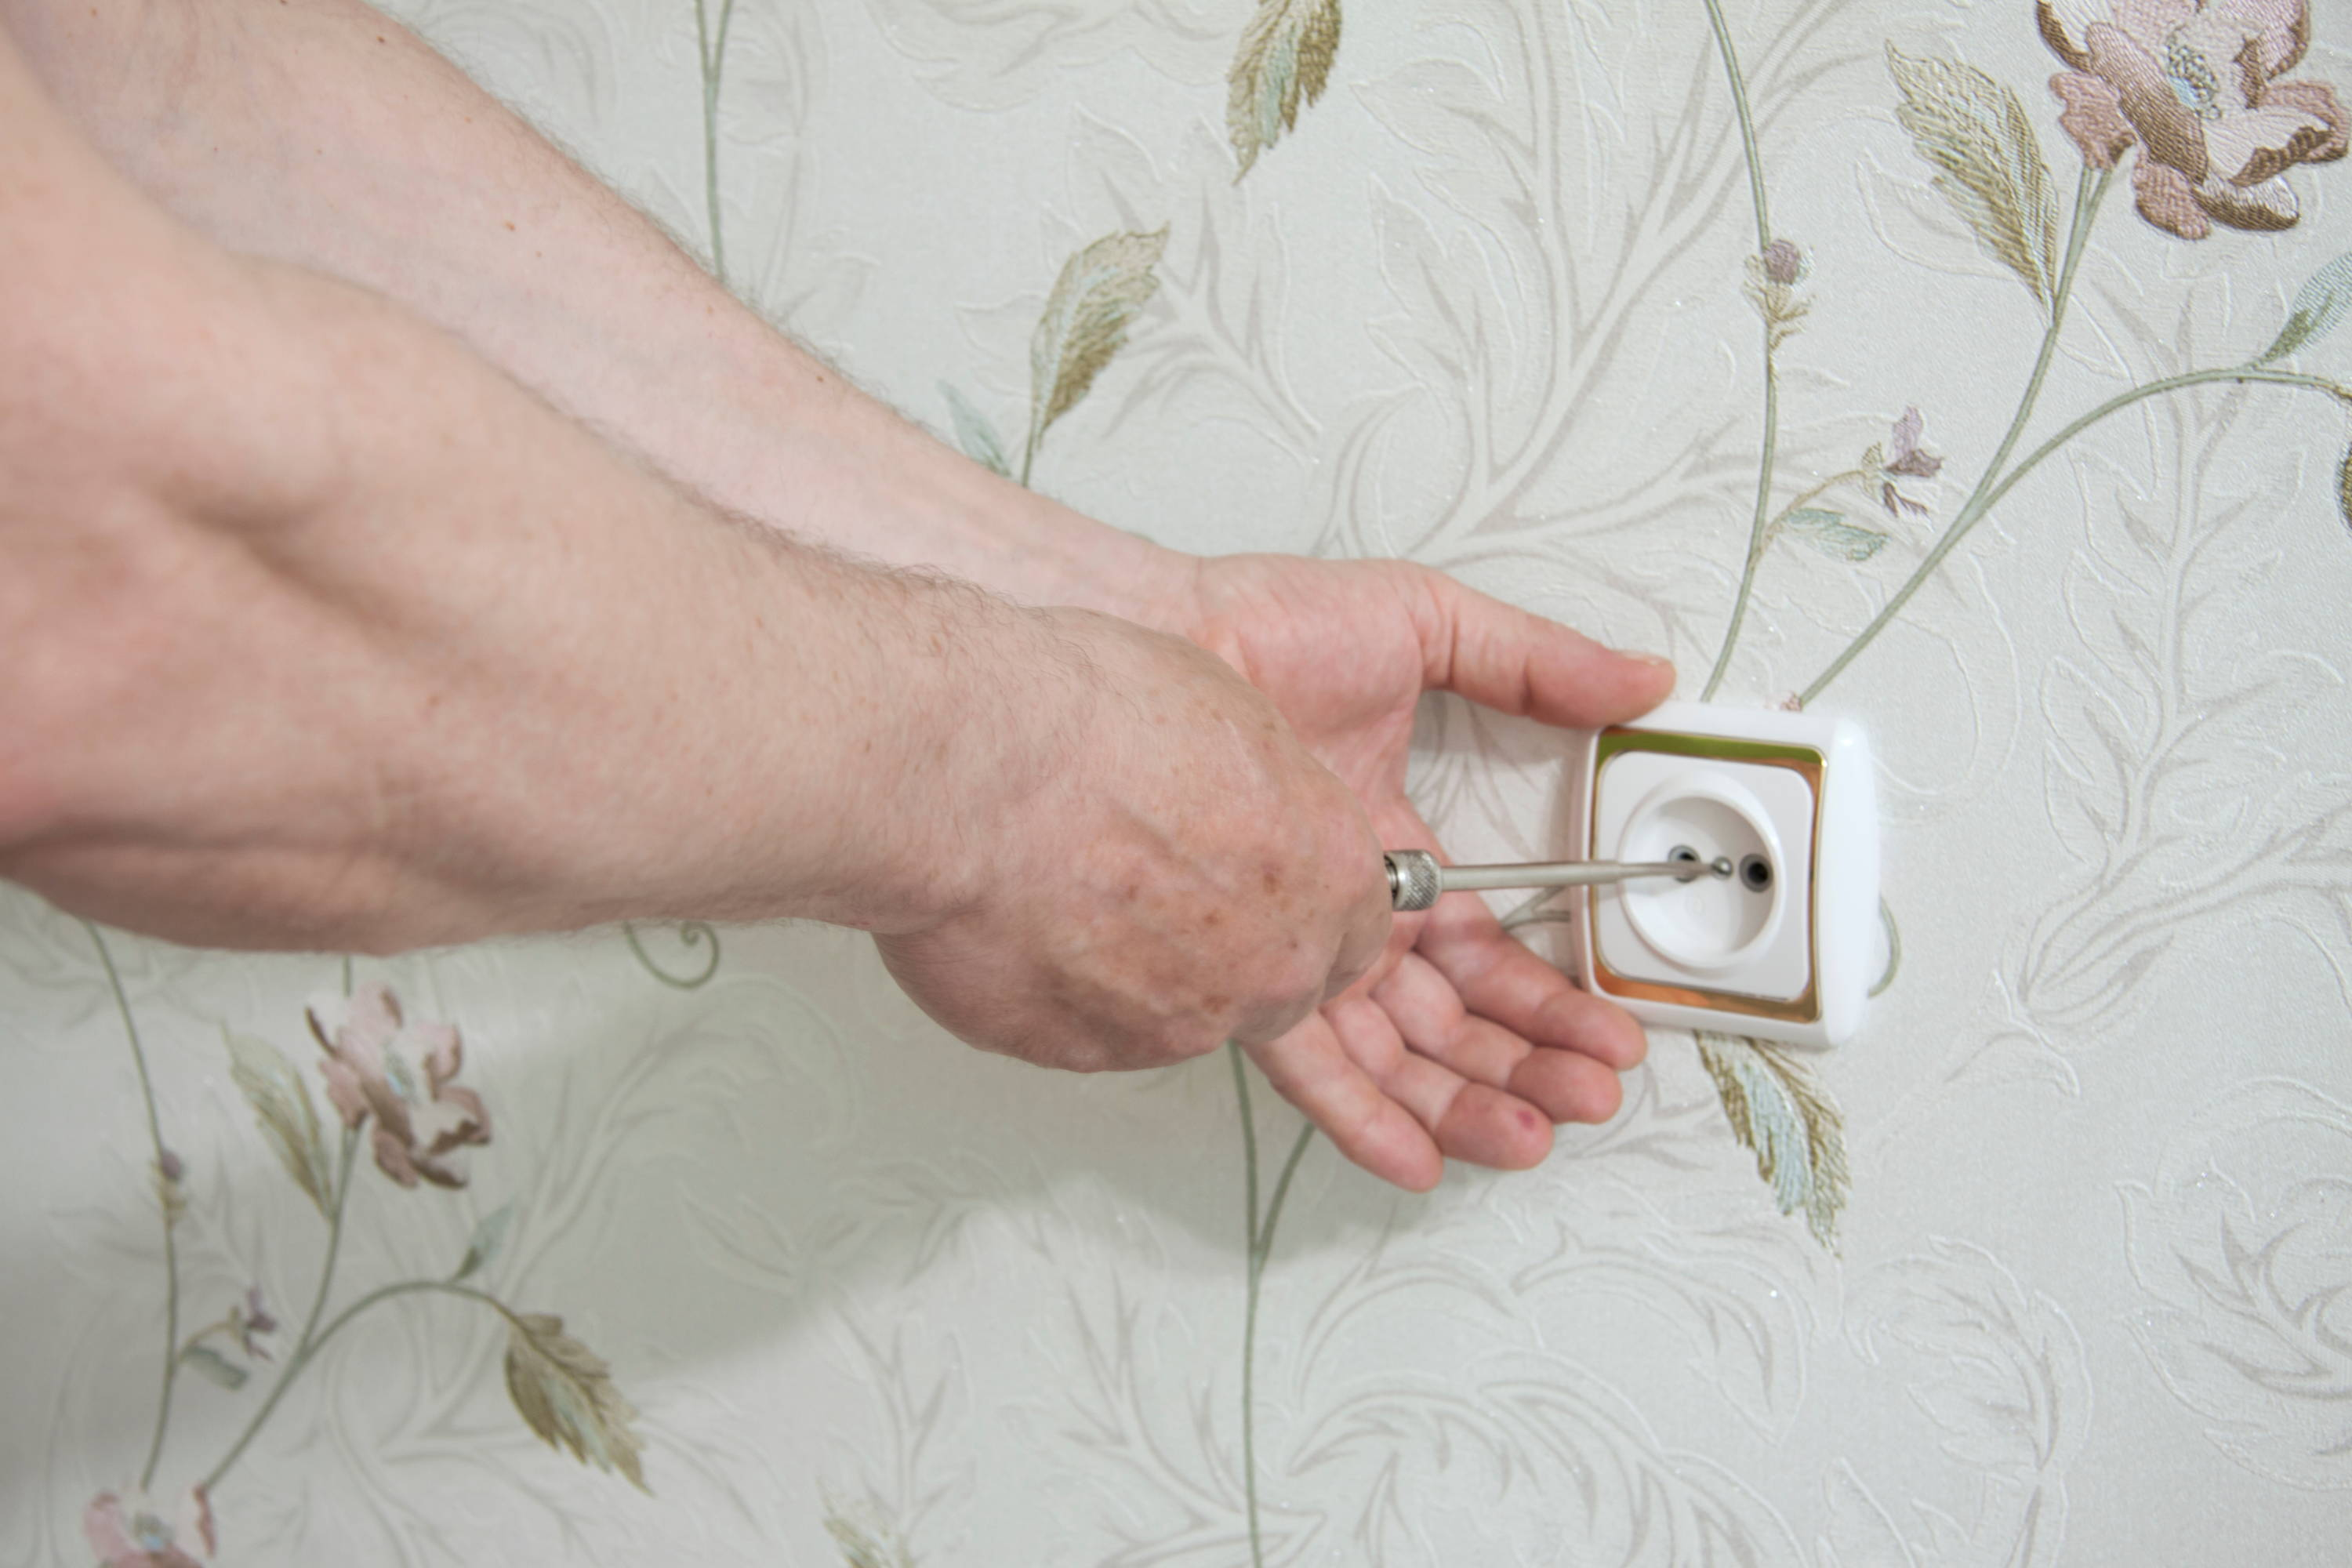 Man's hand plugging in an electrical outlet on floral background